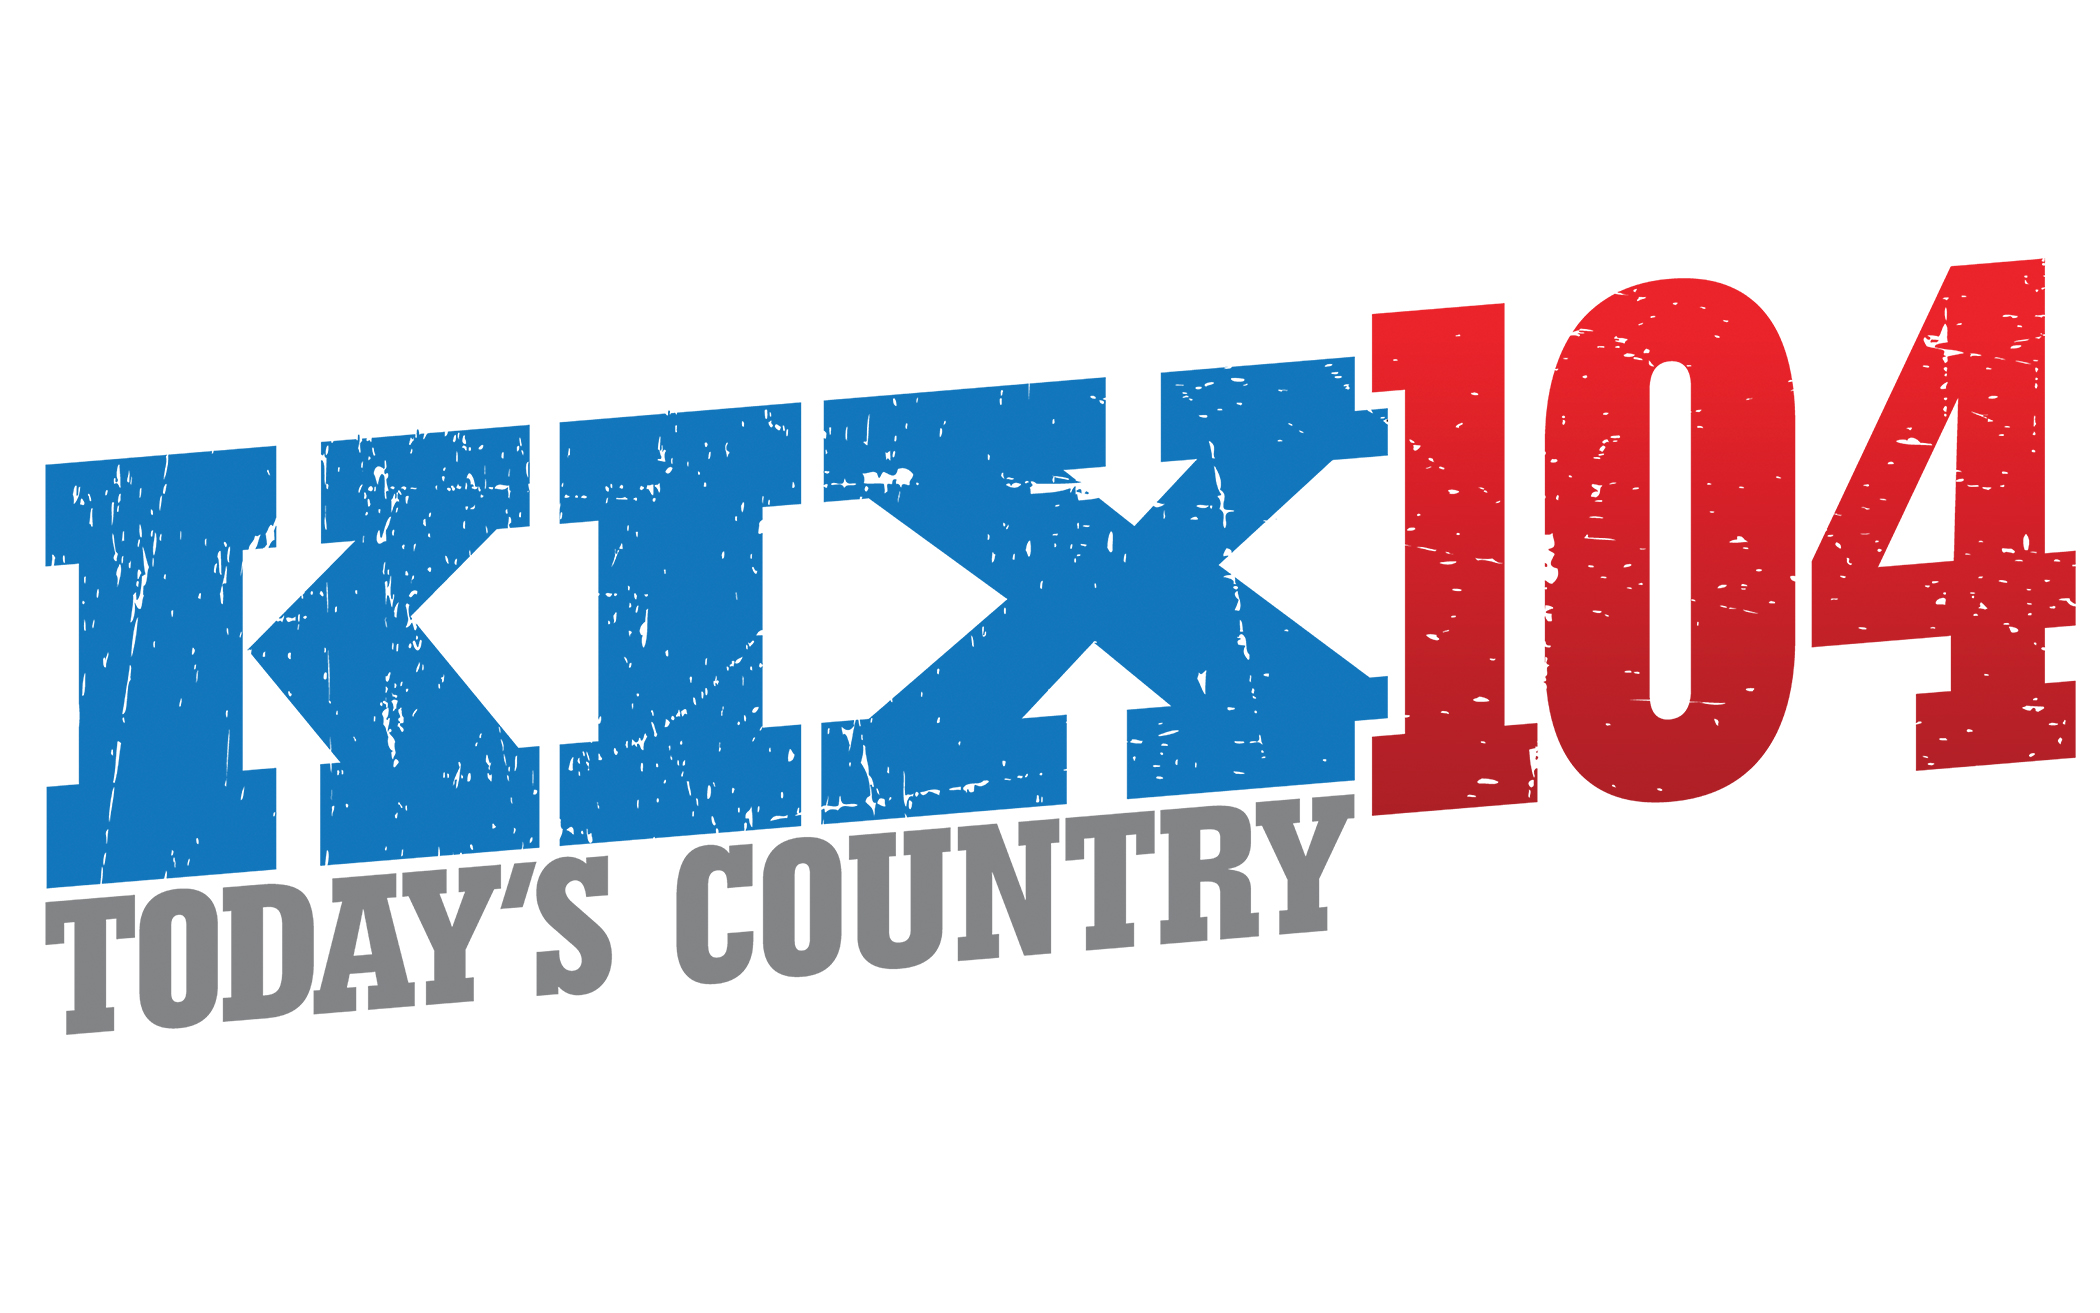 6. iHeart Kix (Media)